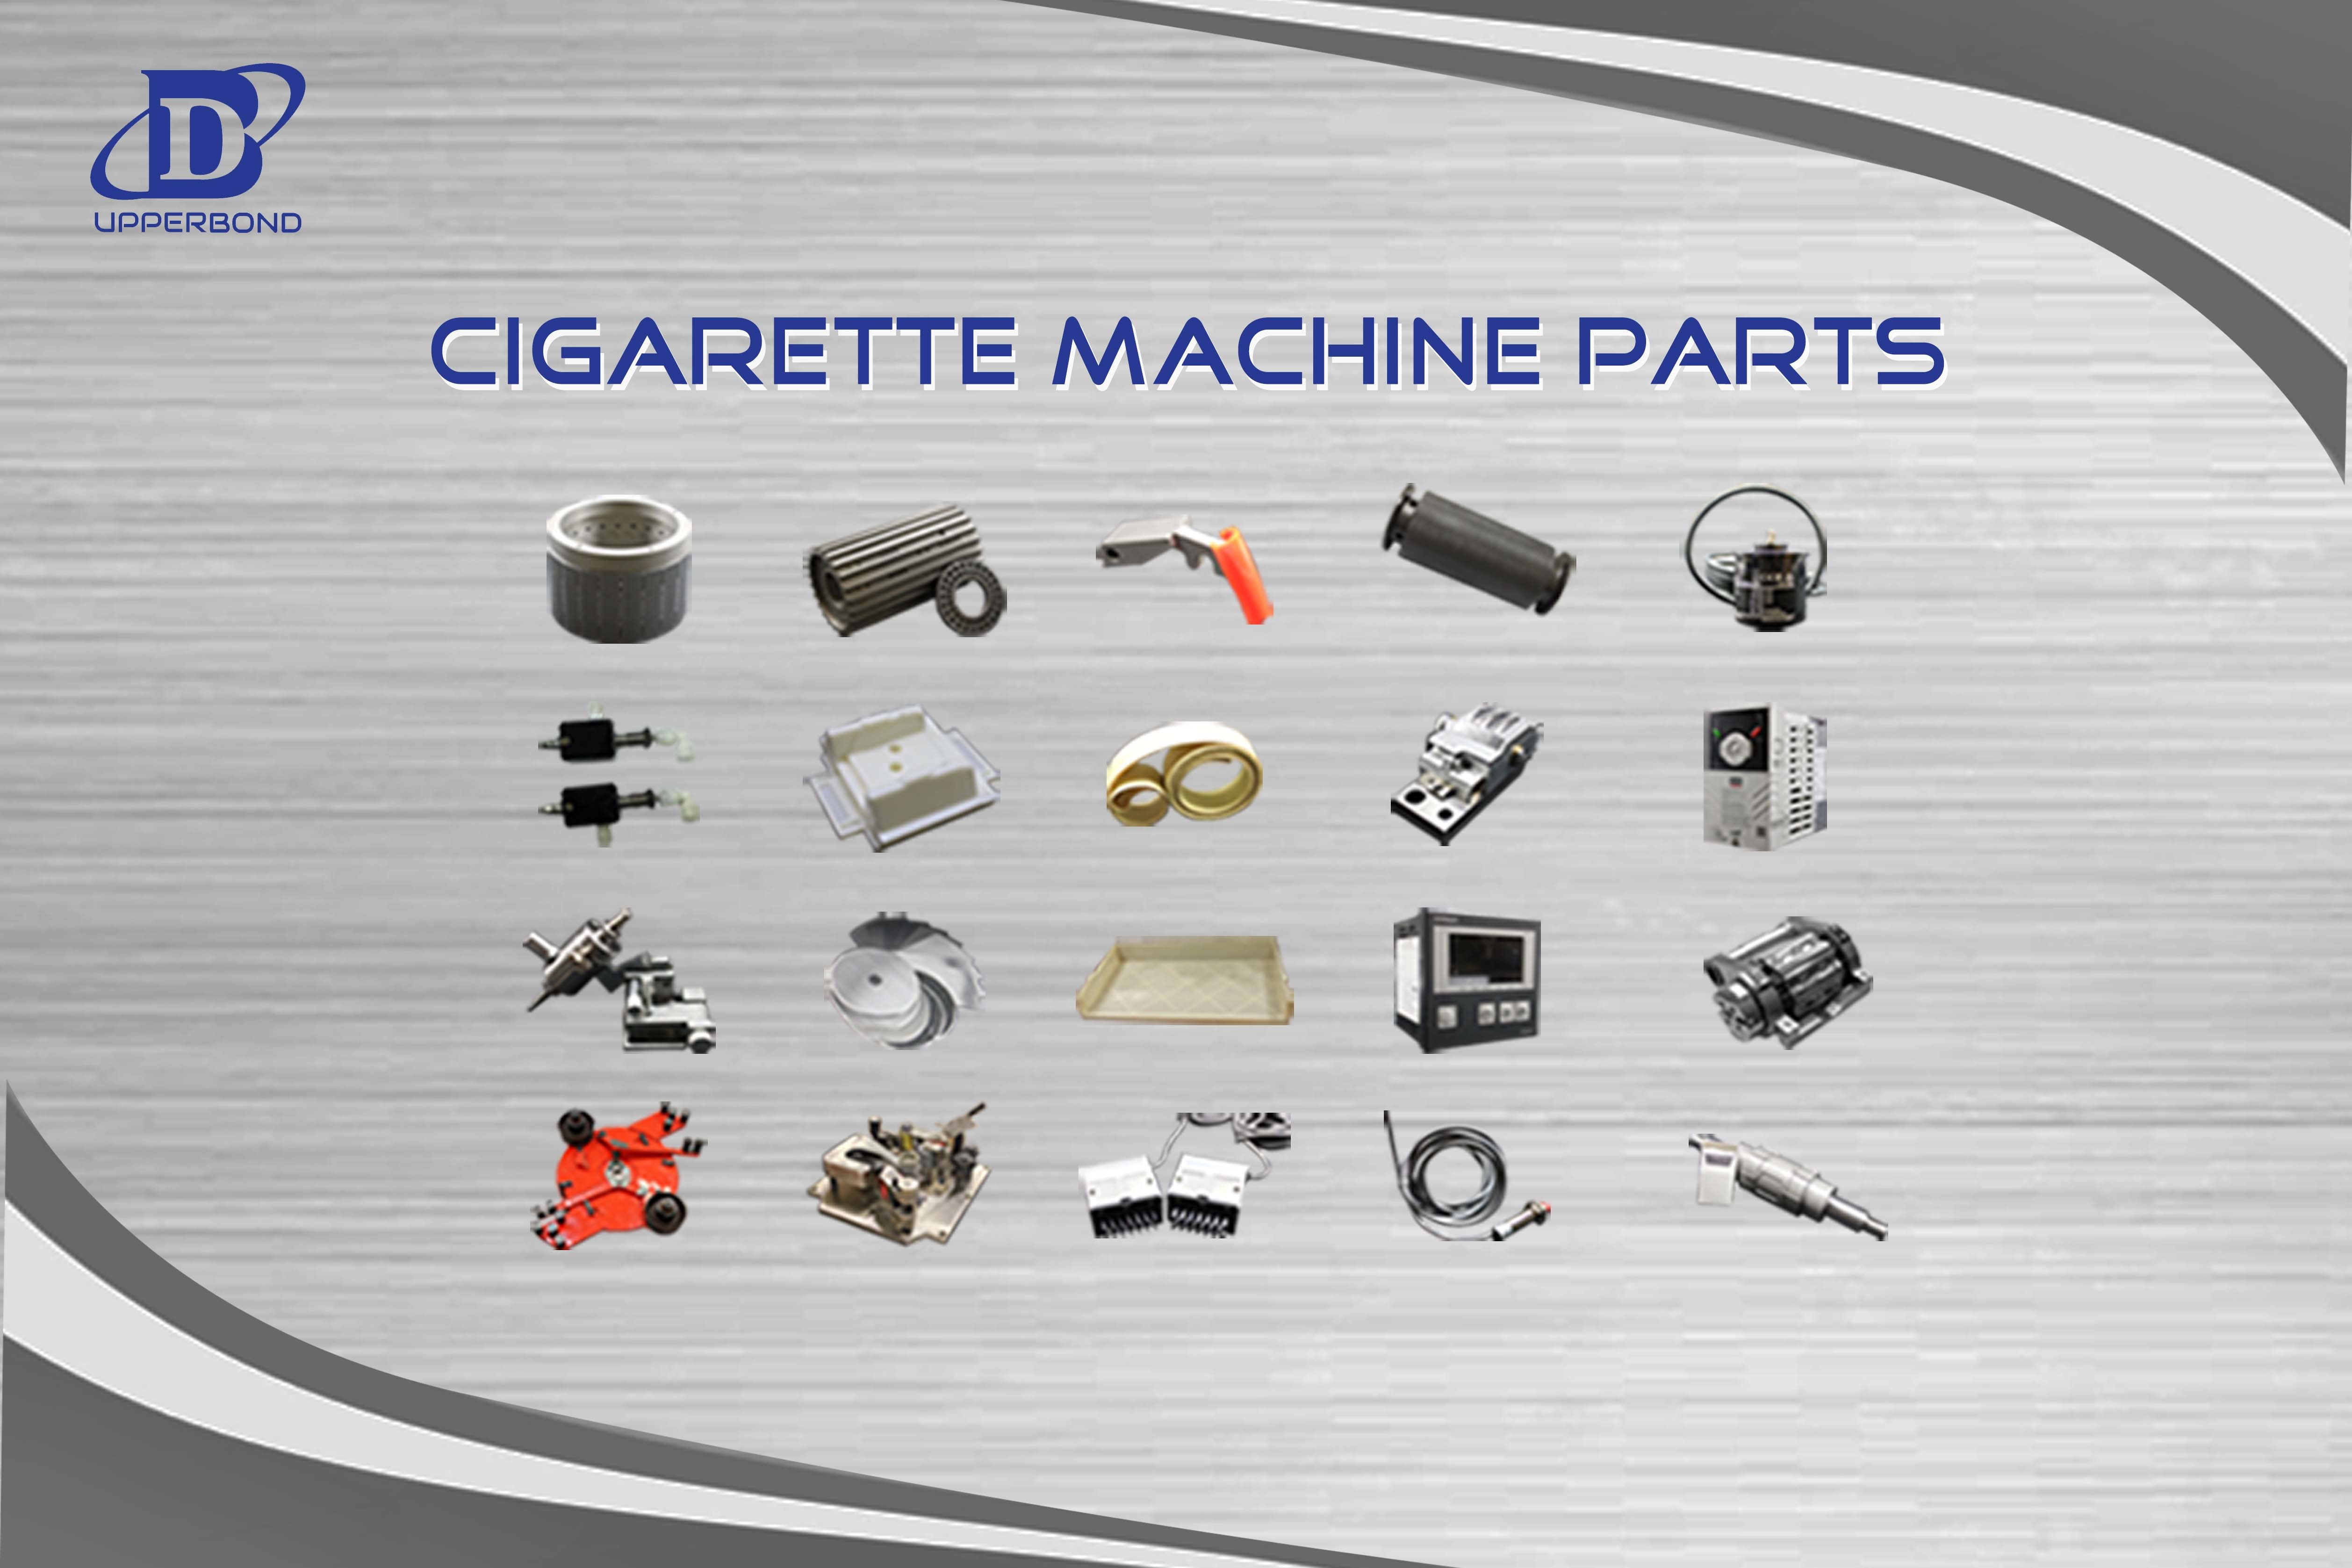 ISO Cigarette Packaging Related Products Upperbond Cigarette Machine Parts